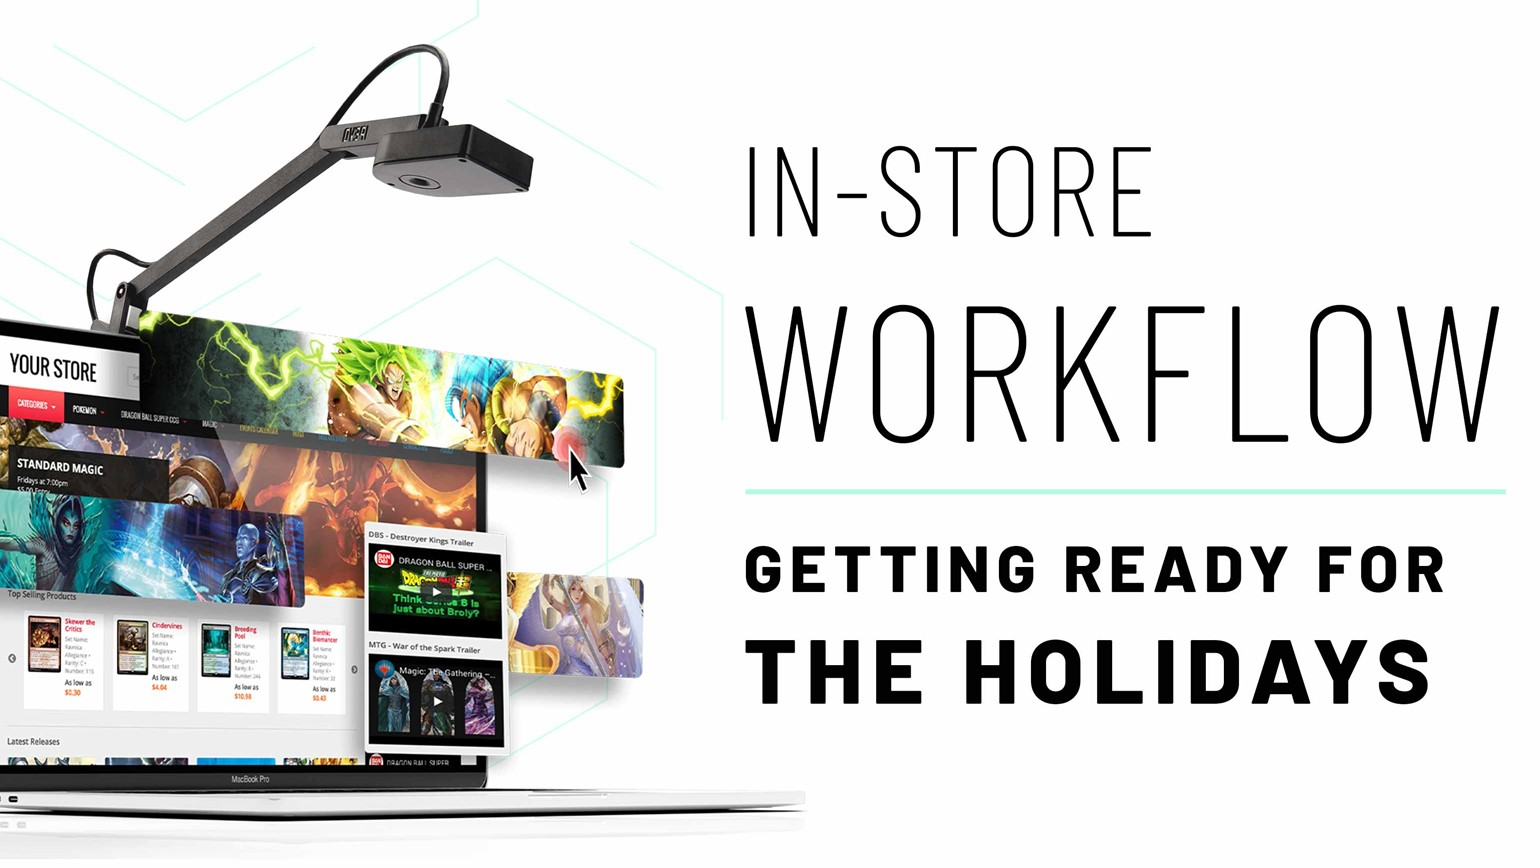 In-Store Workflow: Getting Ready for the Holidays